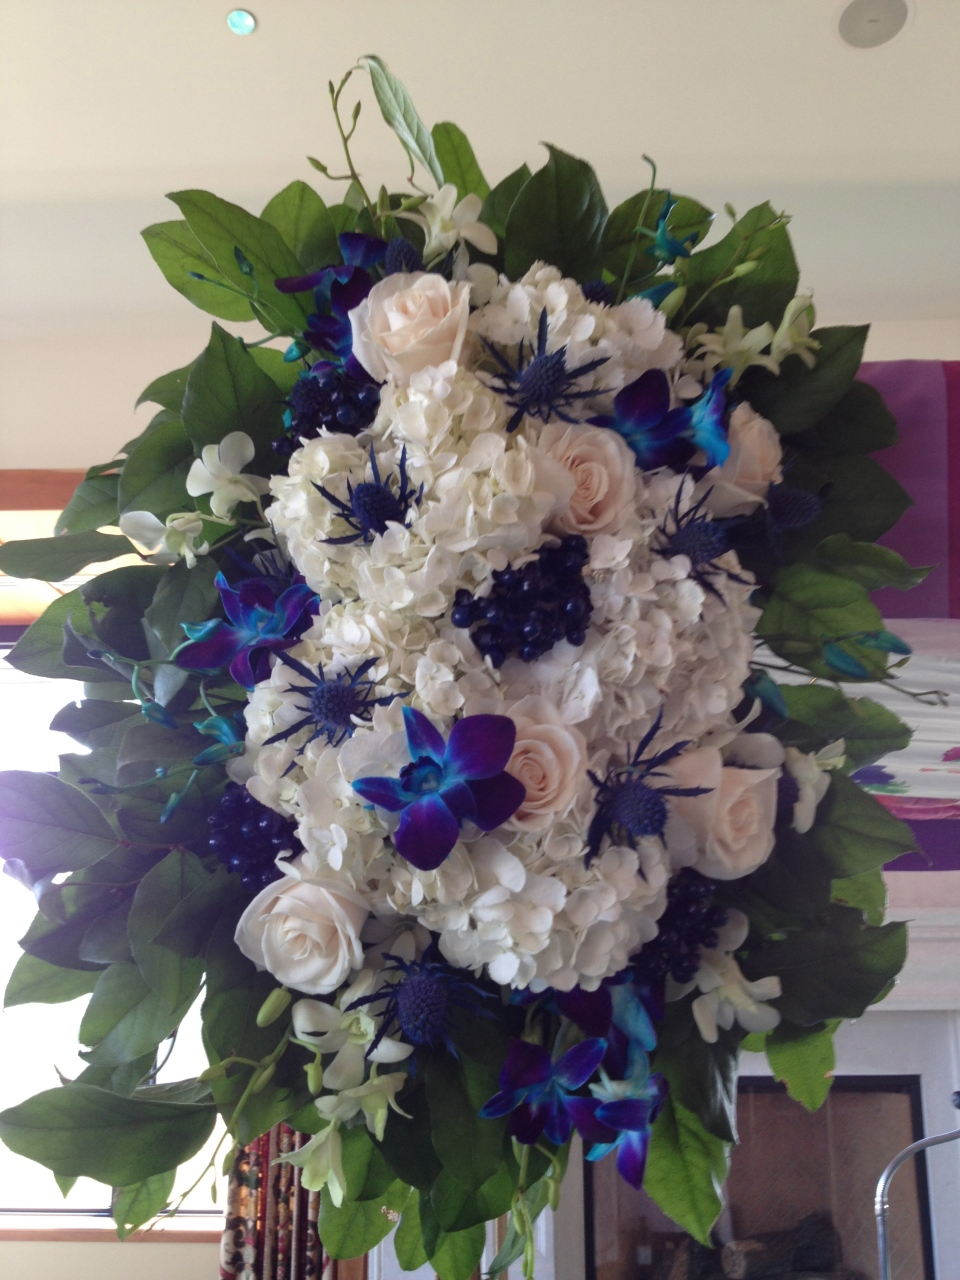 Chuppah decor included hydrangea, scottish thistle, tinted berries, roses and dendrobium orchids